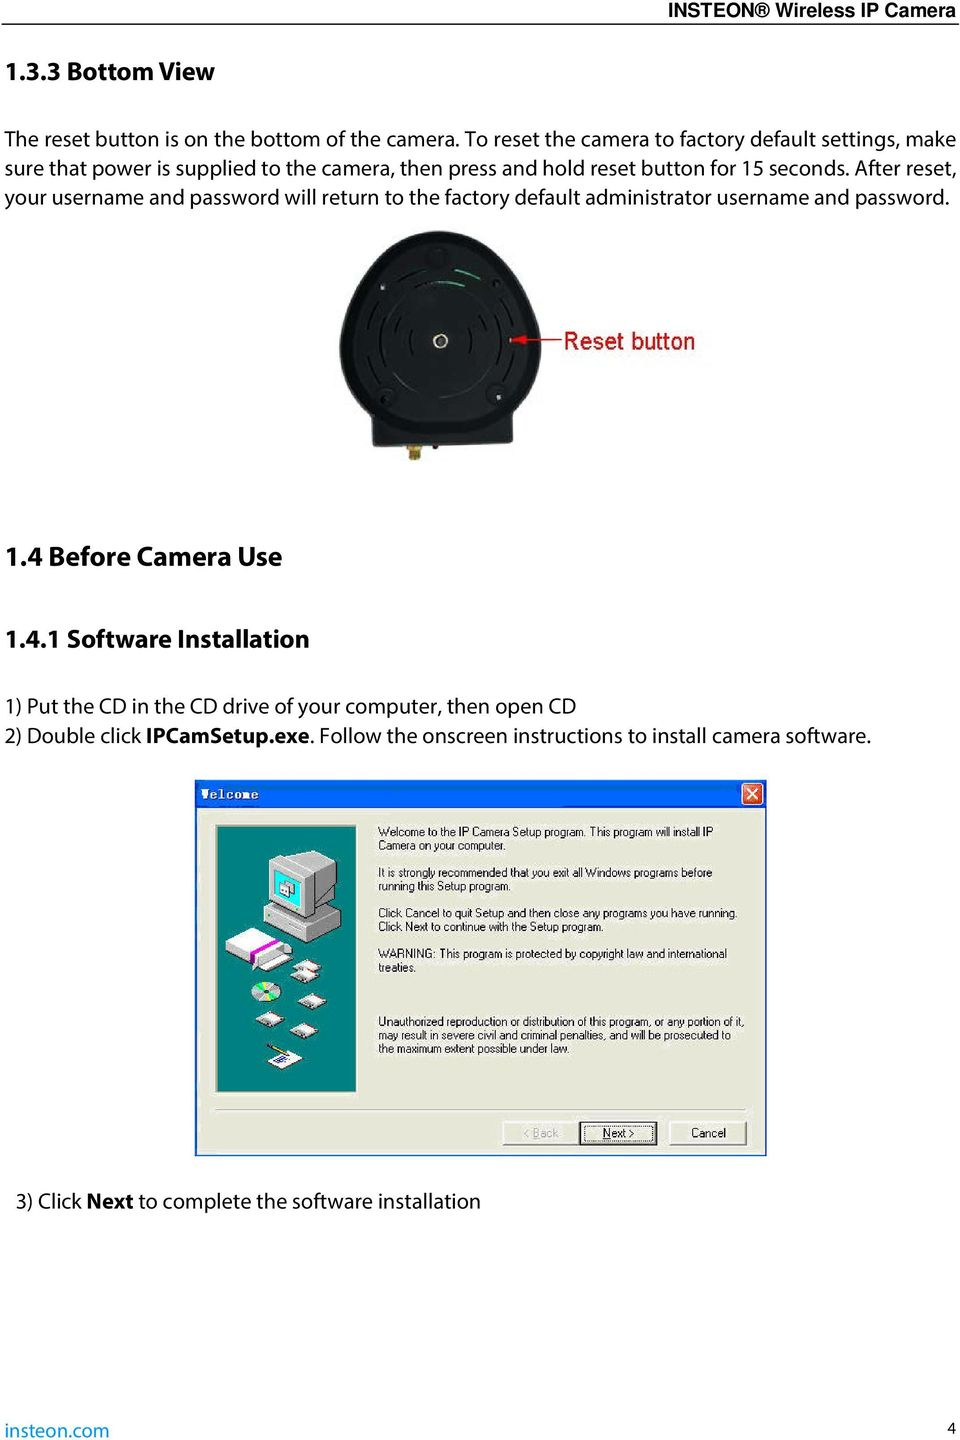 Insteon Wireless Ip Camera Pdf 4 Way Wiring Diagram Installation Insteoncom After Reset Your Username And Password Will Return To The Factory Default Administrator